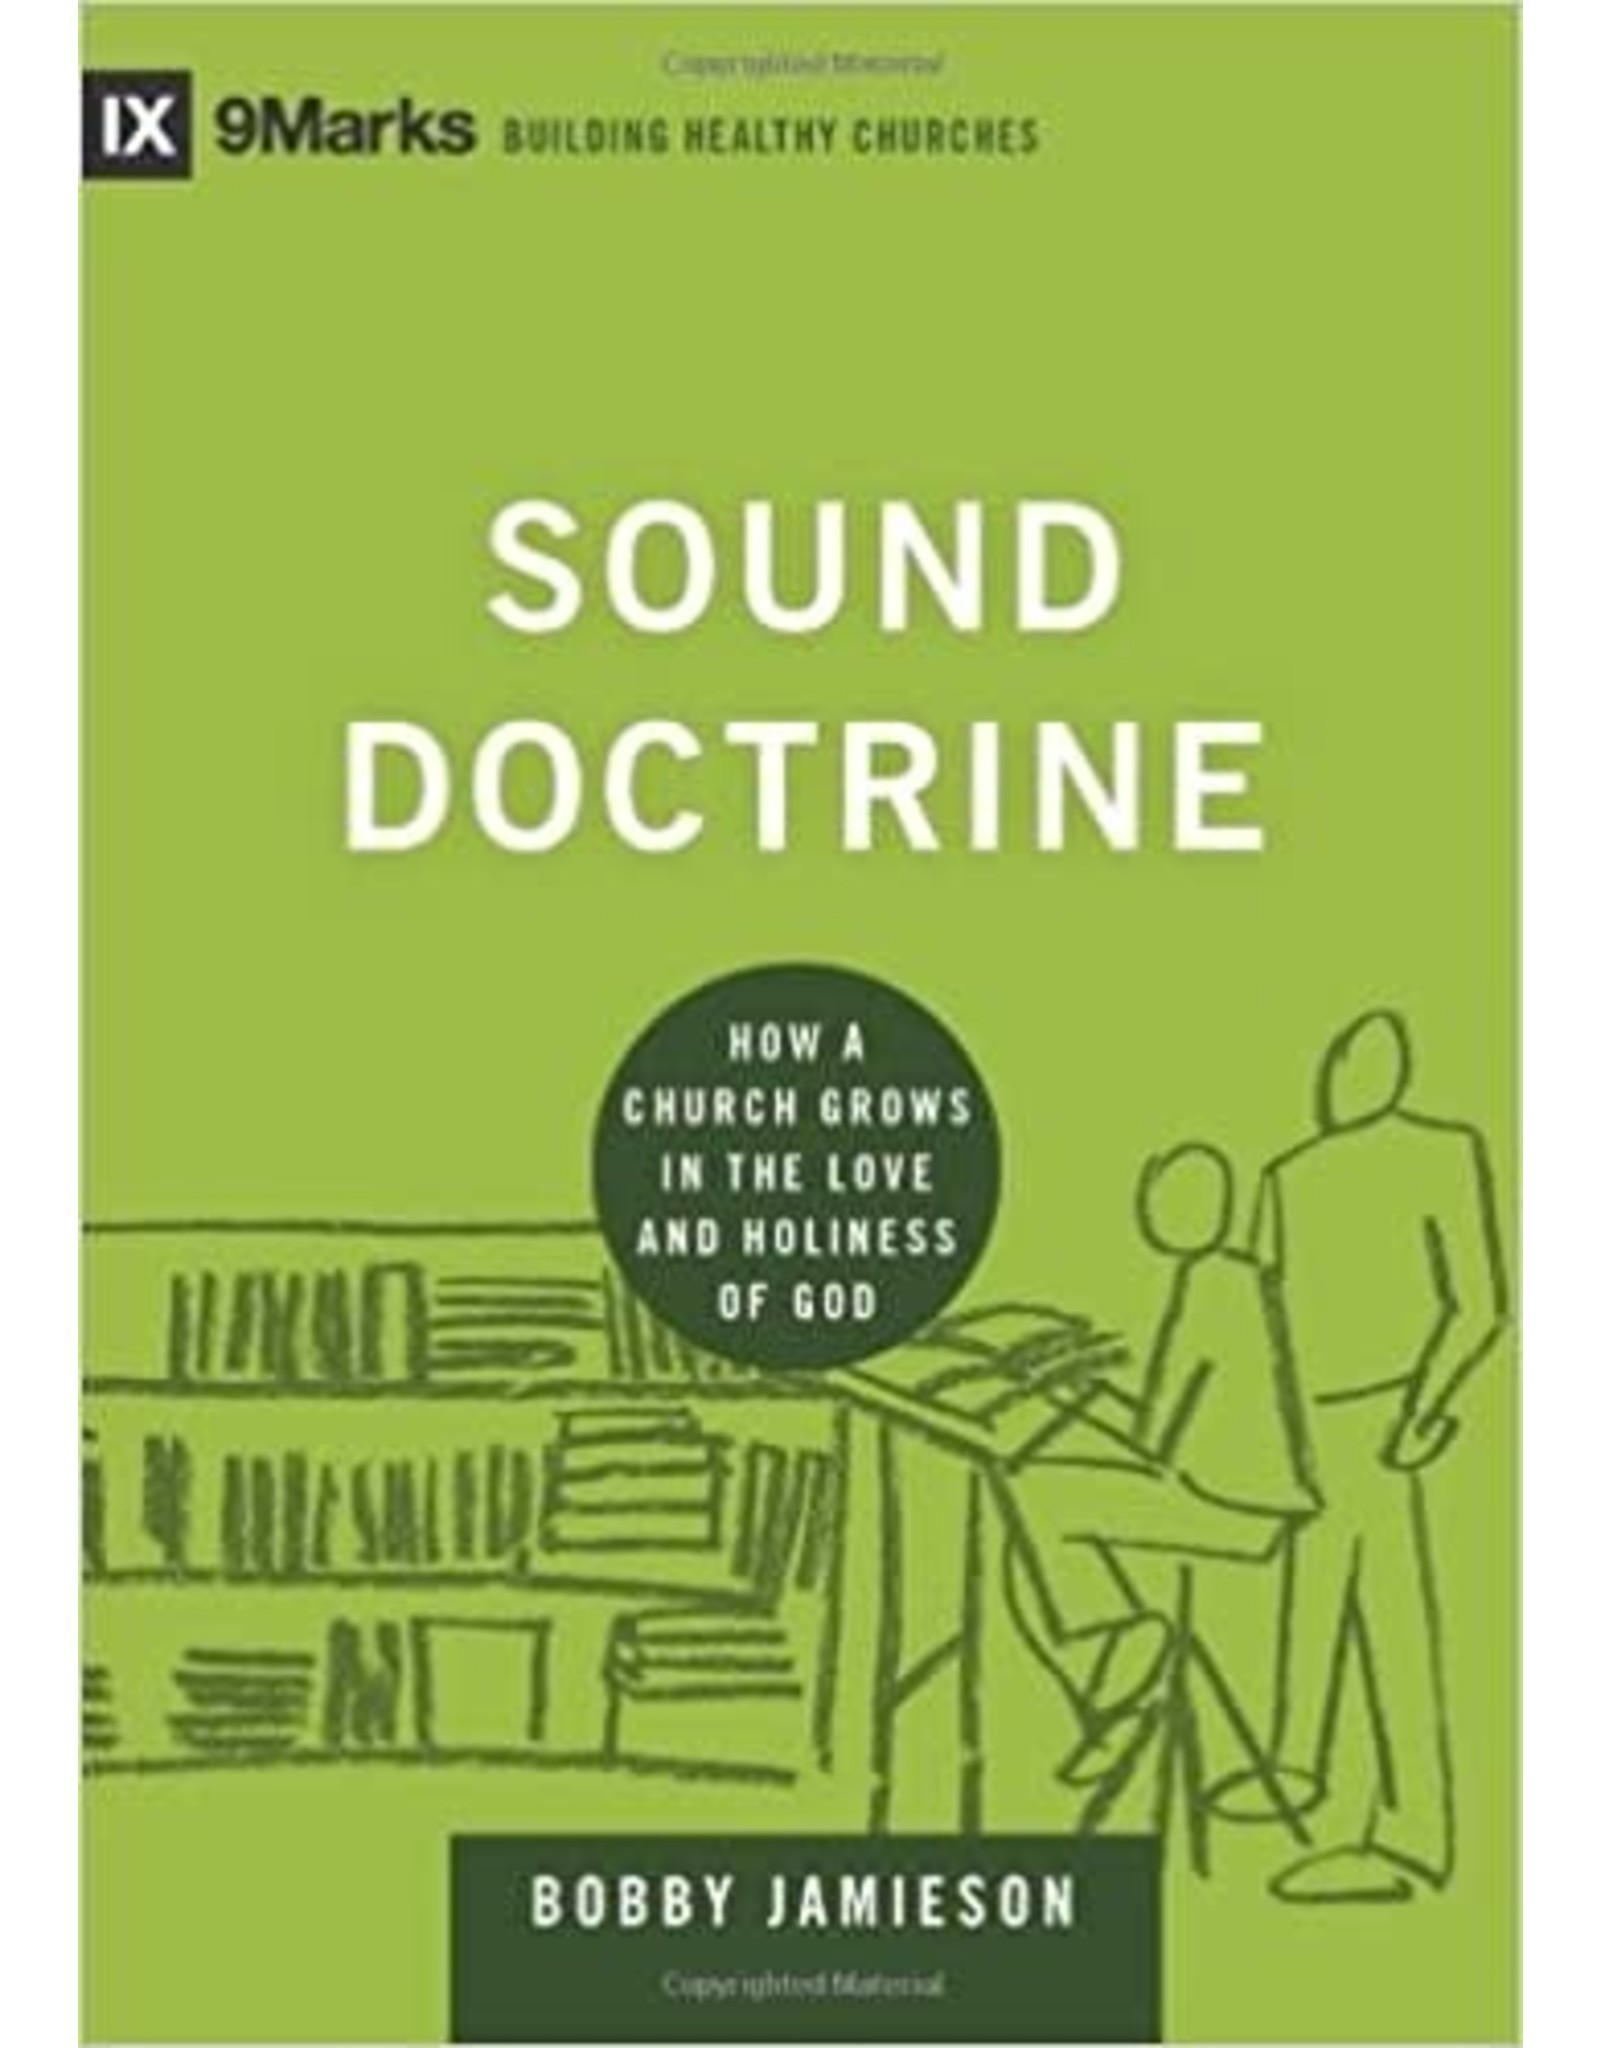 Jamieson Sound Doctrine: How a Church Grows in the Love and Holiness of God (9Marks: Building Healthy Churches)